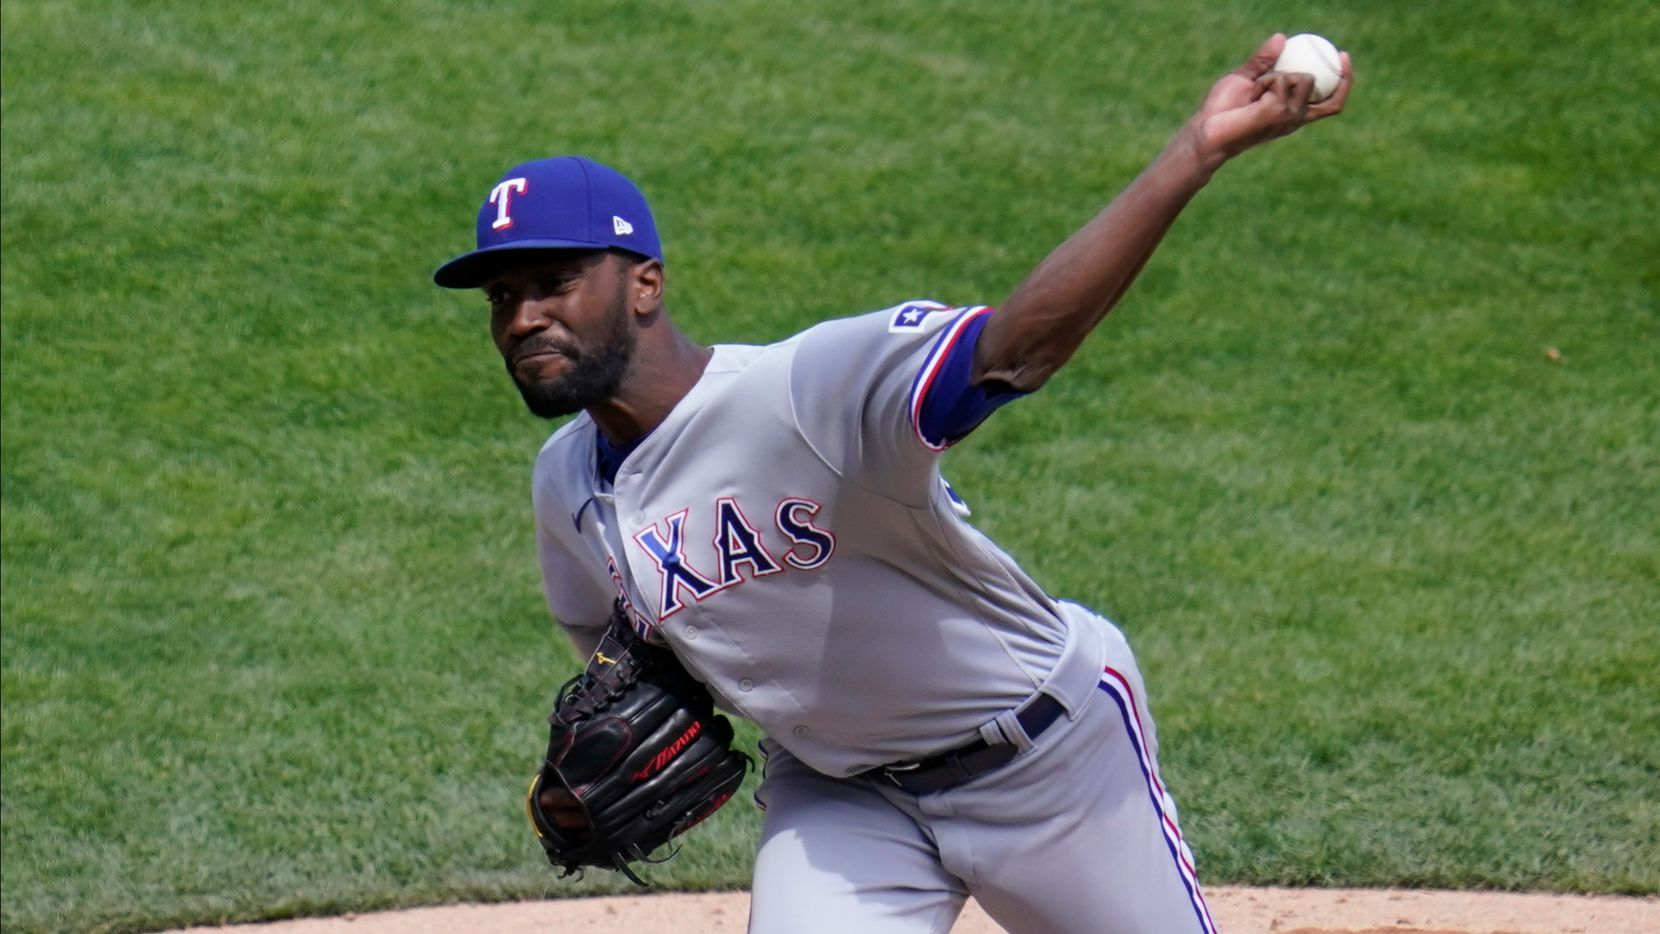 Texas Rangers' pitcher Taylor Hearn throws in the eighth inning of a baseball game against the Minnesota Twins, Thursday, May 6, 2021, in Minneapolis. (AP Photo/Jim Mone)